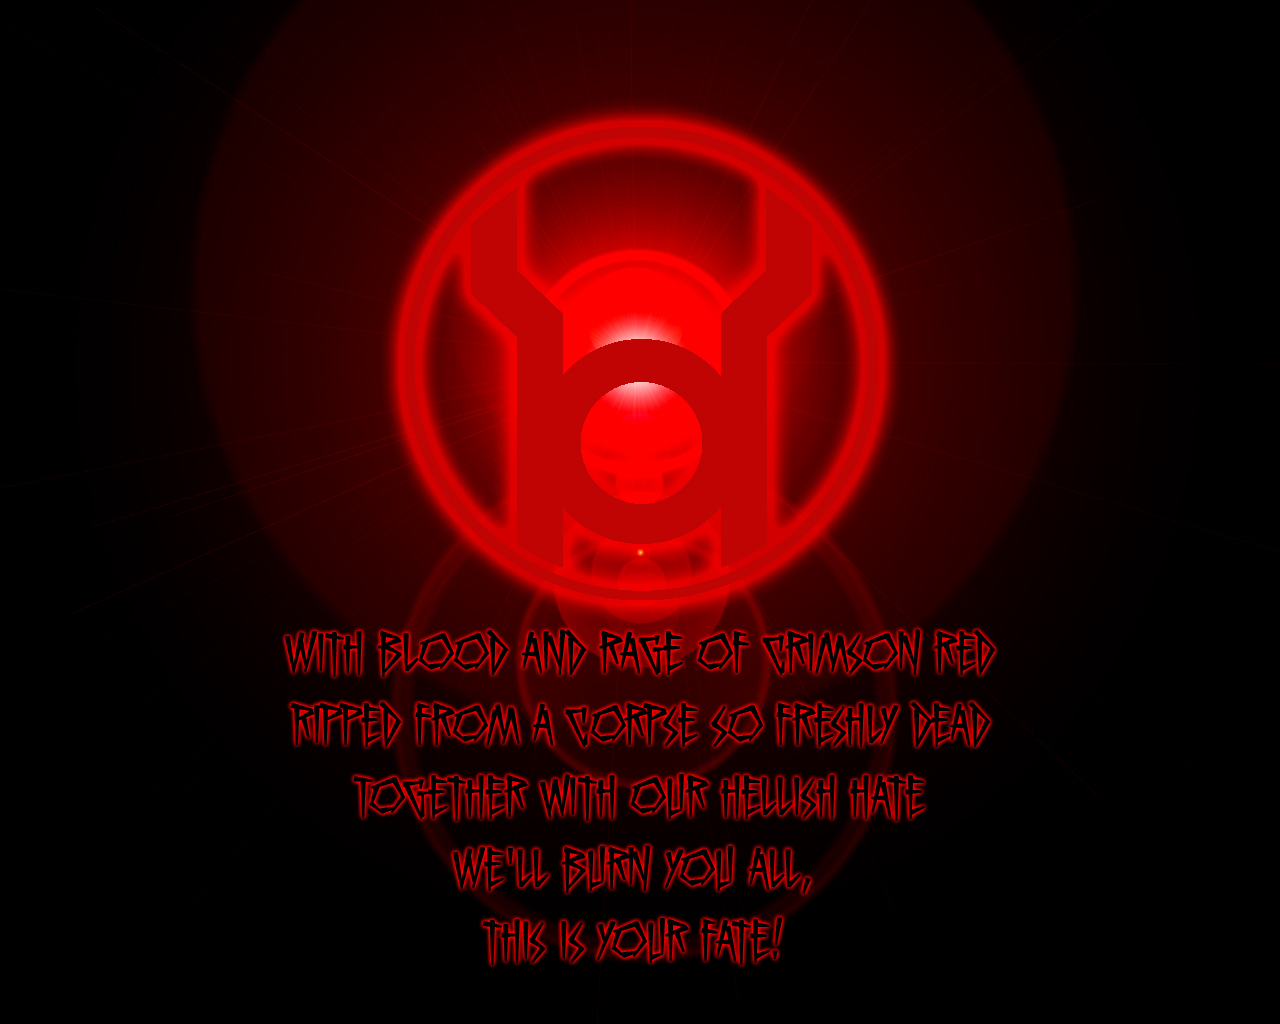 Red lantern corps symbol wallpaper - photo#23